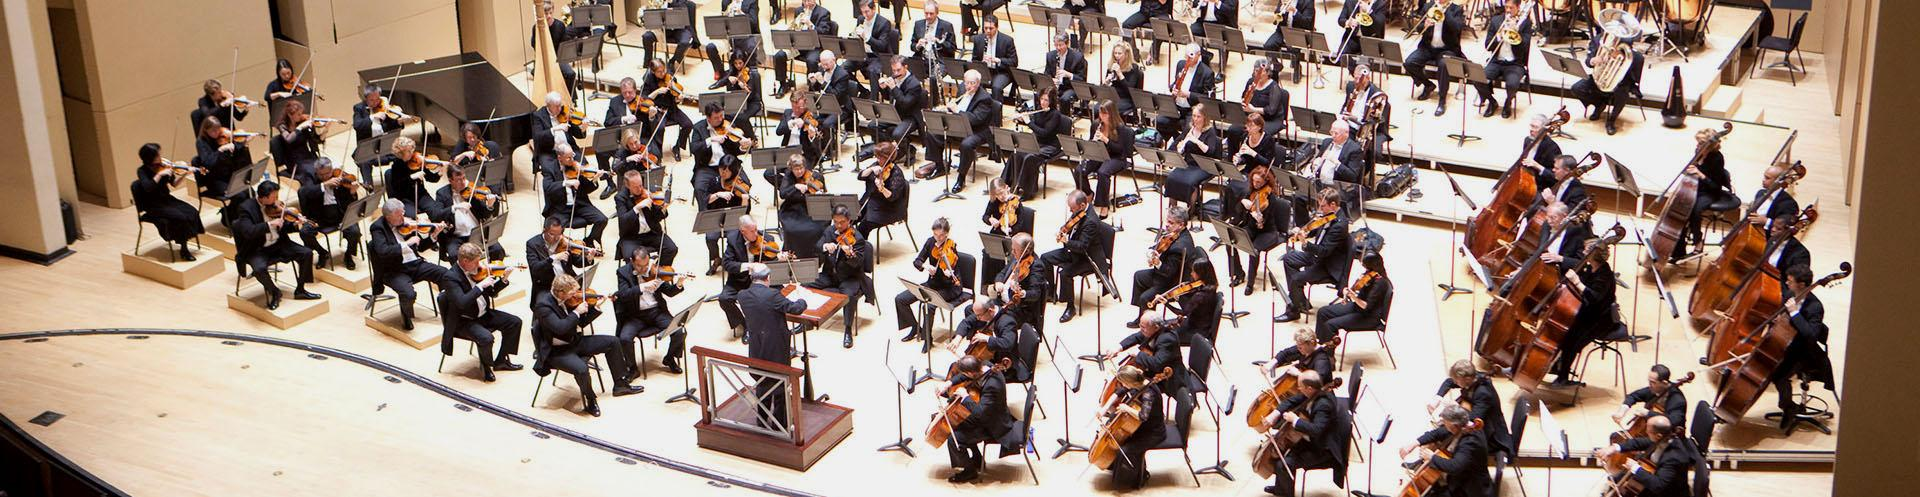 Atlanta Symphony Orchestra at KSU